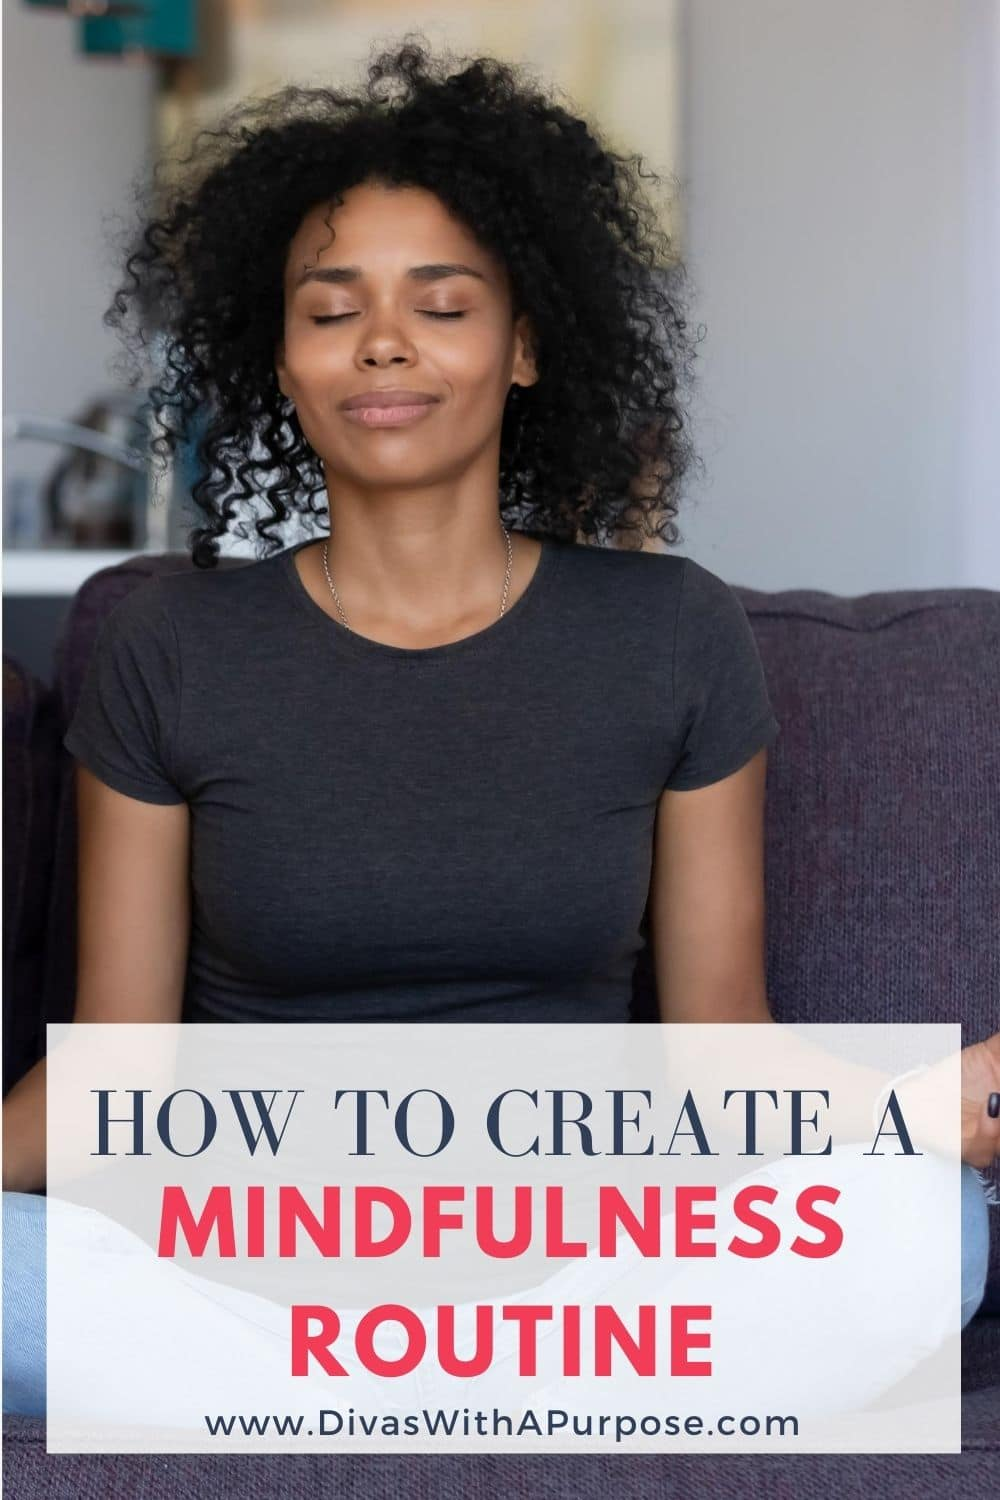 So how do you get into a daily mindfulness routine? To get started, choose a time to practice each day. The goal is to get into the habit of taking a few moments each day to focus your awareness on what is happening at that present moment. #mindfulness #selfcare